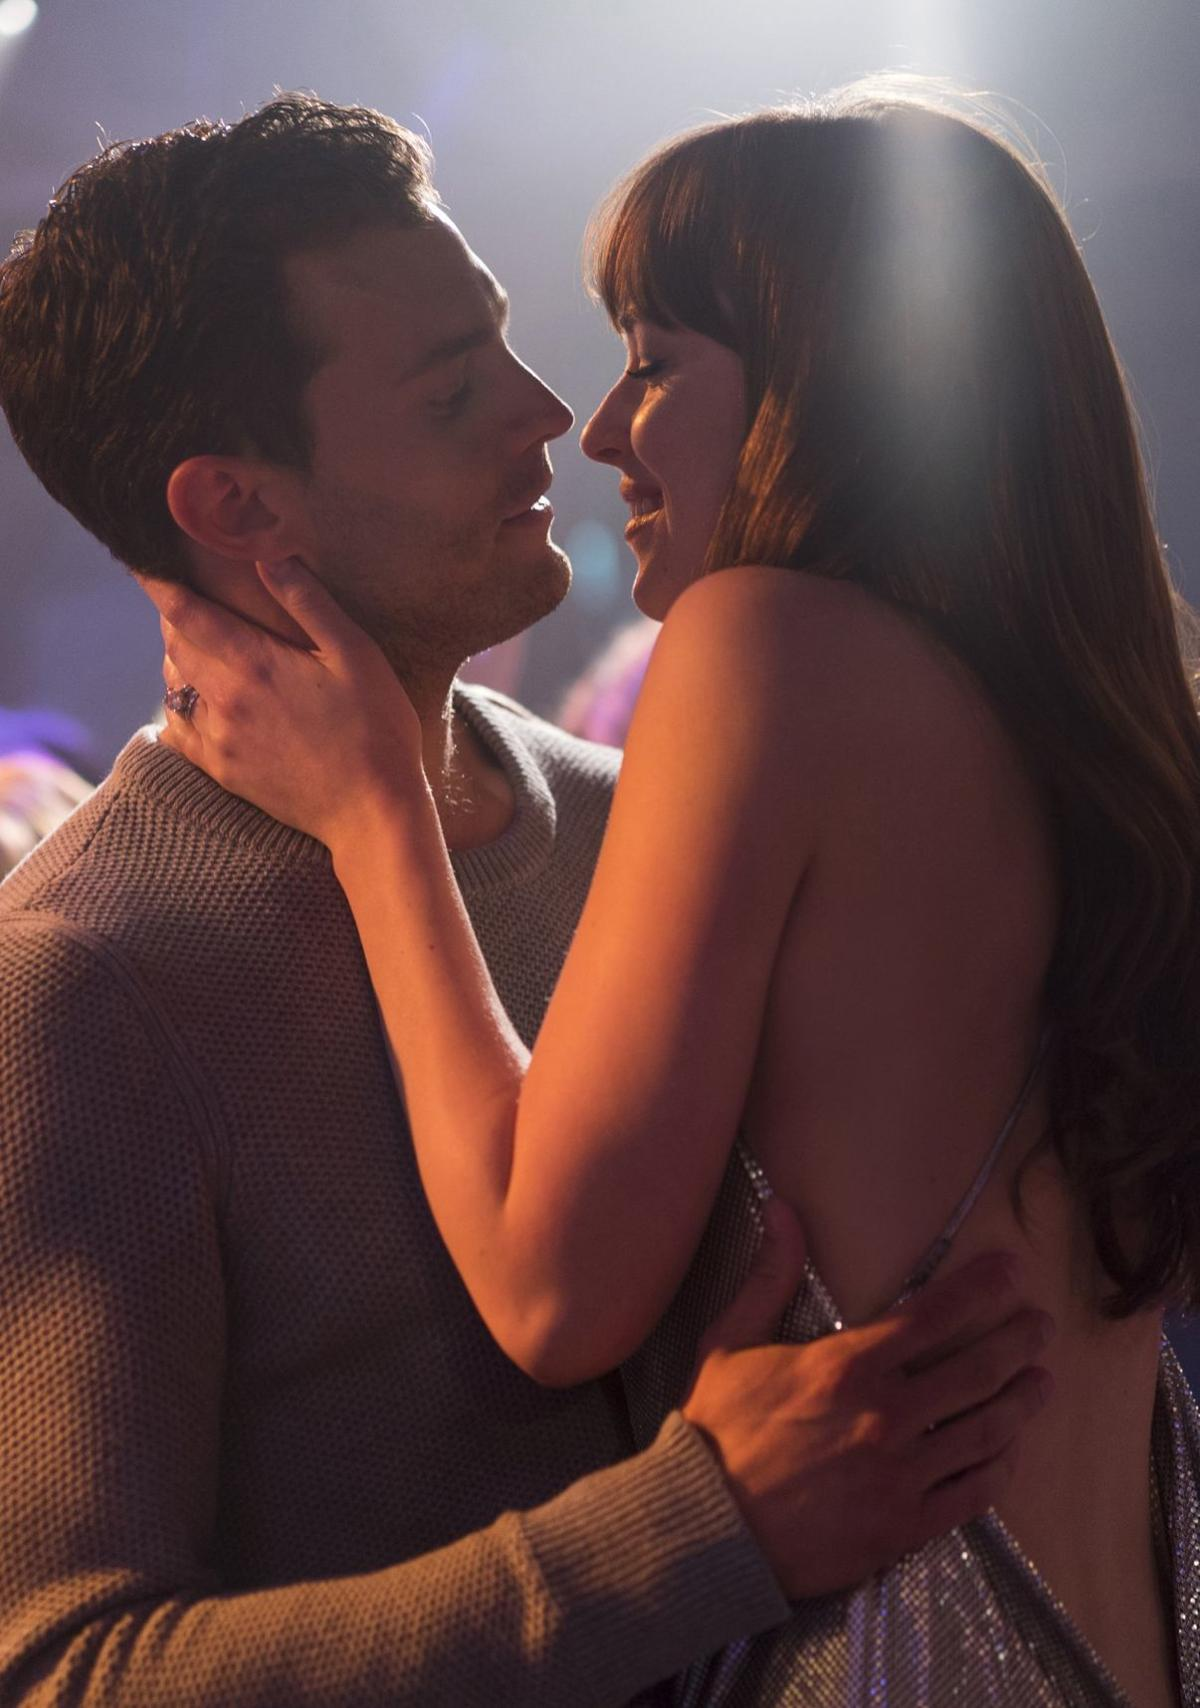 d7578332b54ee Review: 'Fifty Shades Freed' is one of the worst movies I've ever ...